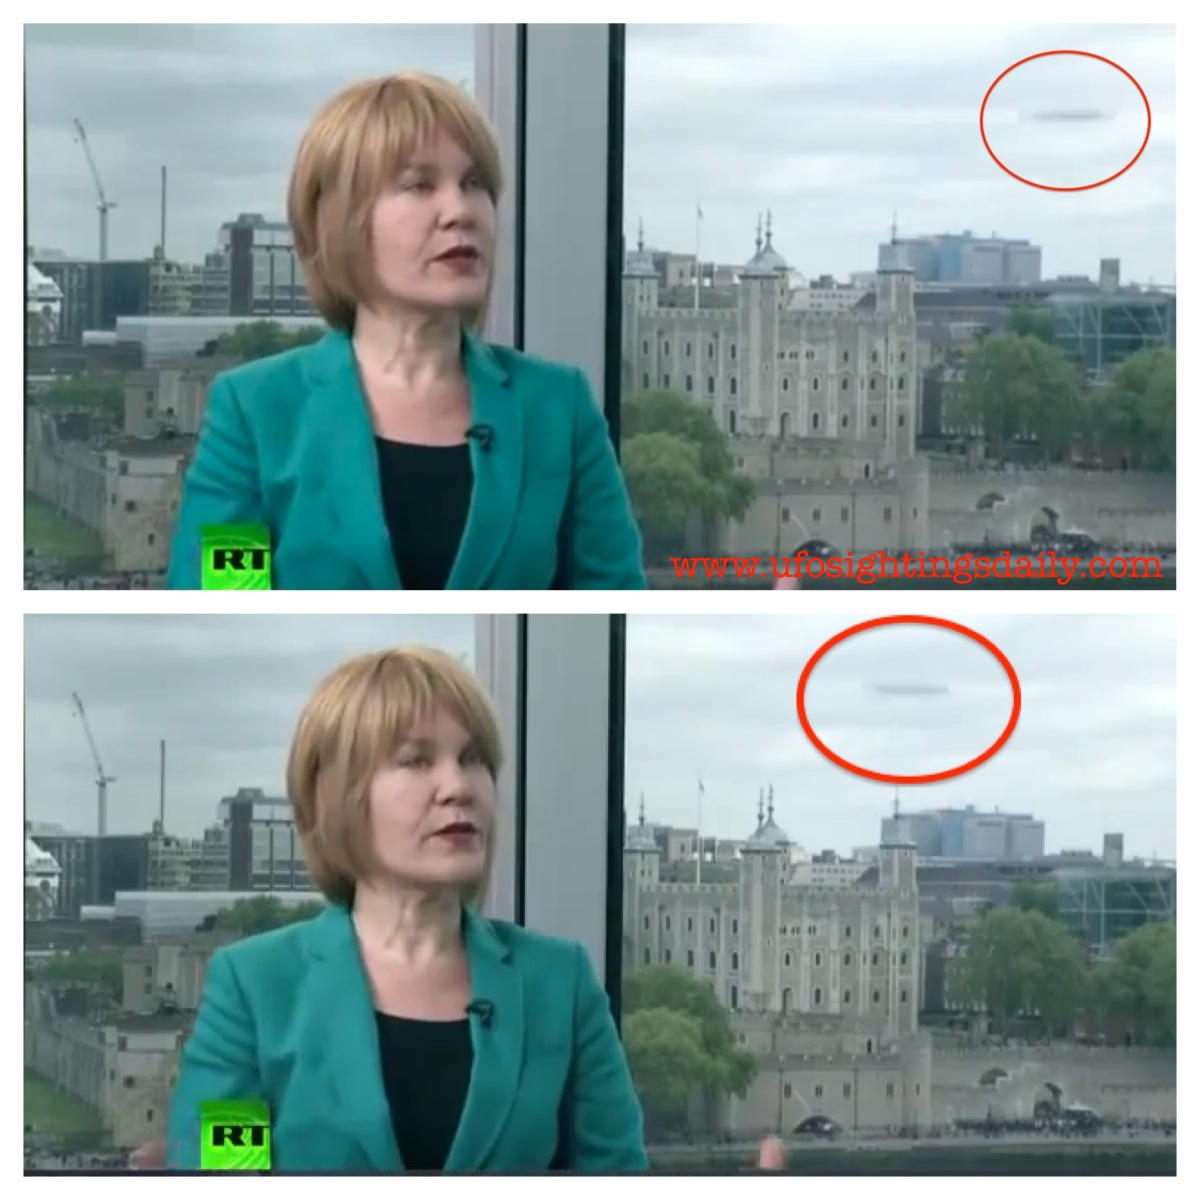 Ufo Sightings Daily Ufo Shows Up On Russia Today News In